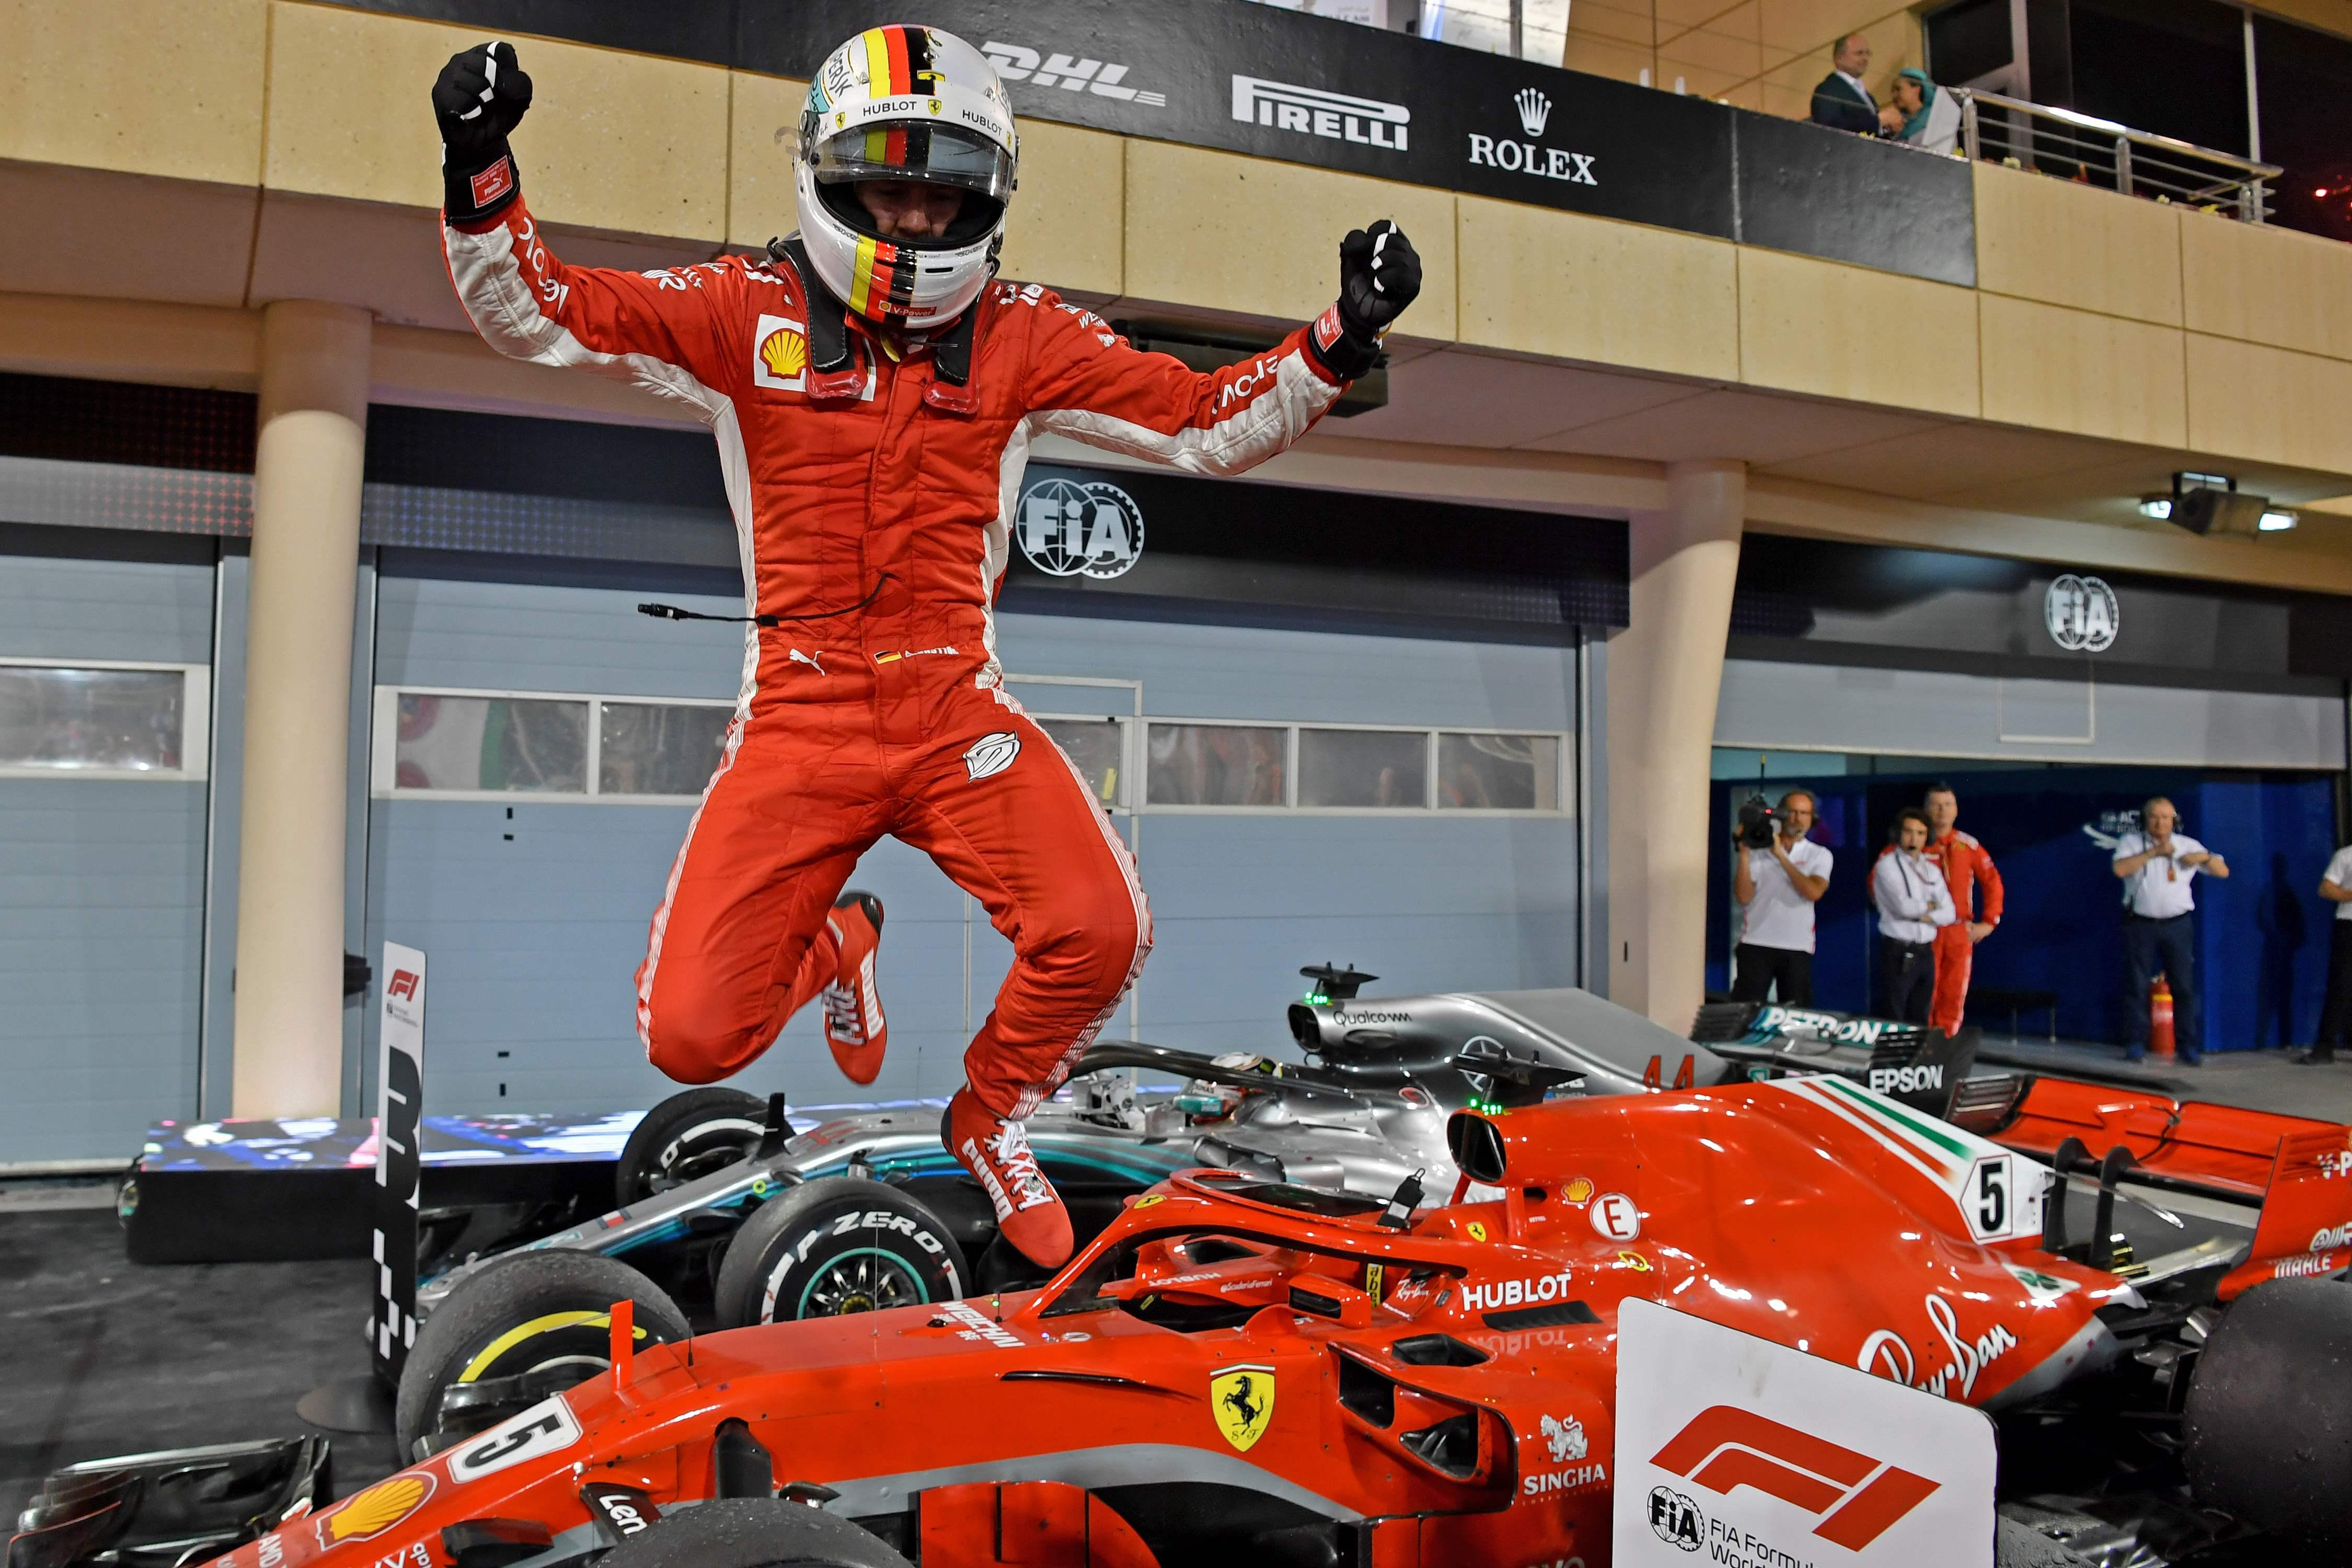 Sebastian Vettel is looking for his third win of the season after victory at the Bahrain Grand Prix